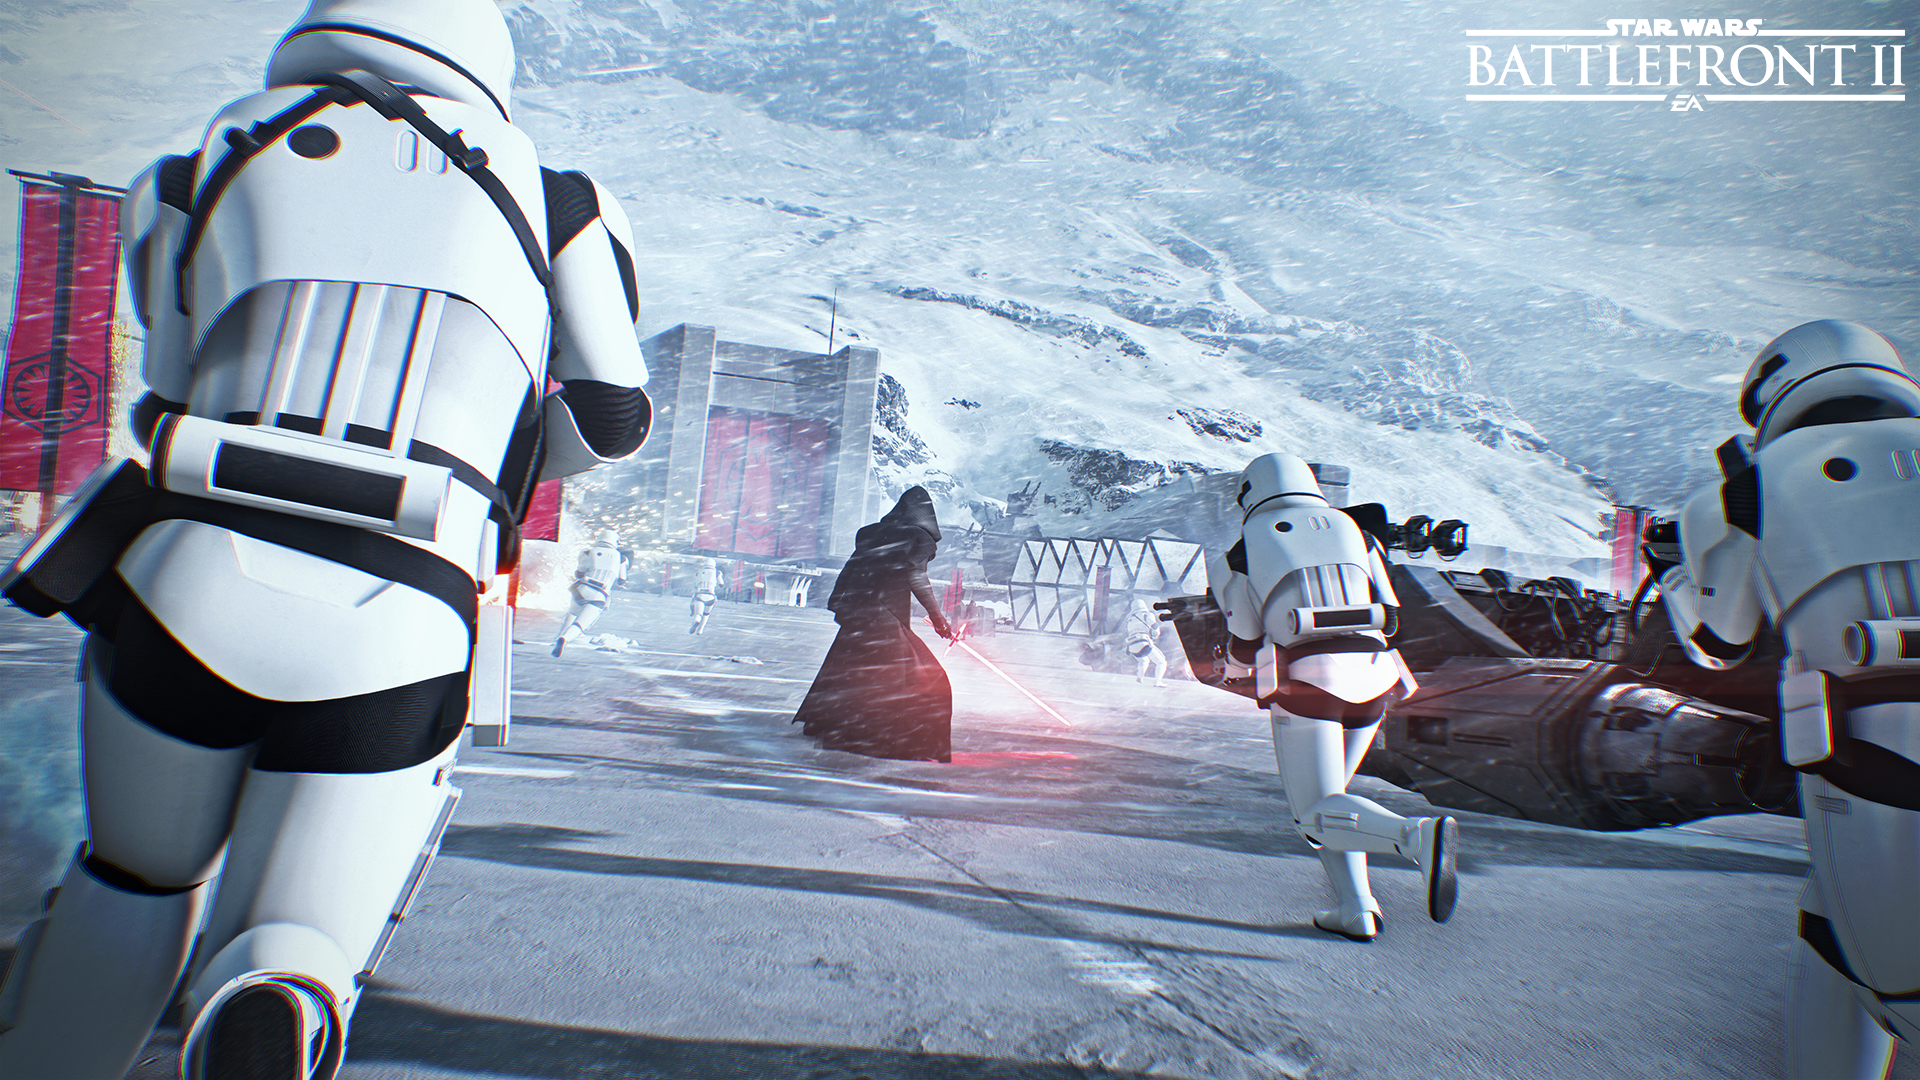 Star Wars Battlefront 2 trailer, release date reveal COUNTDOWN: Start time and panel info